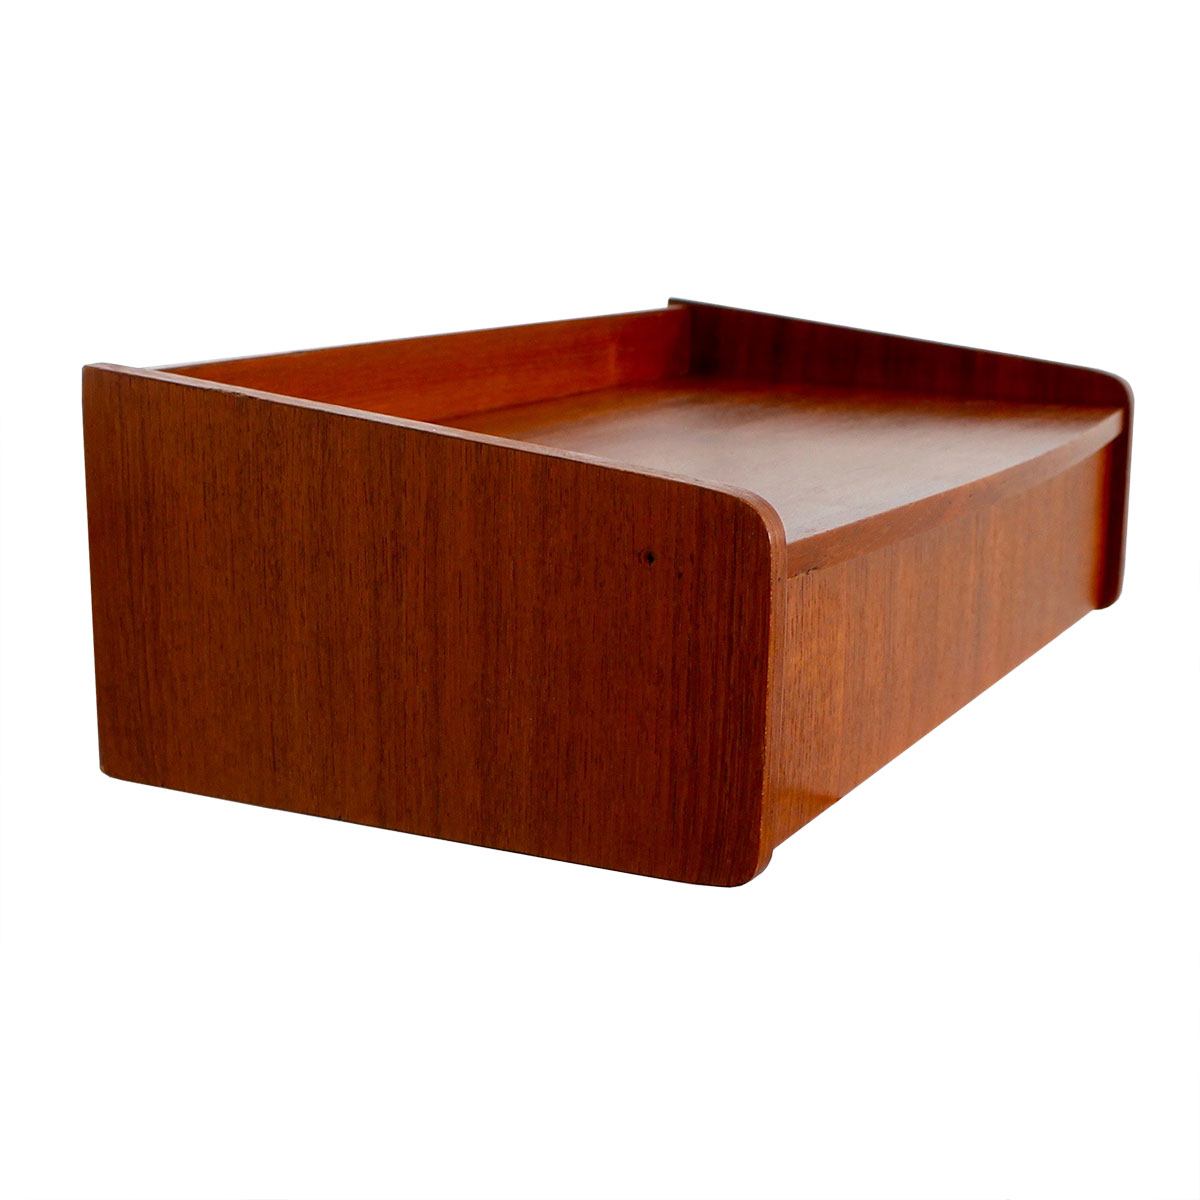 Danish Modern Teak Hanging Shelf w/ Drawer